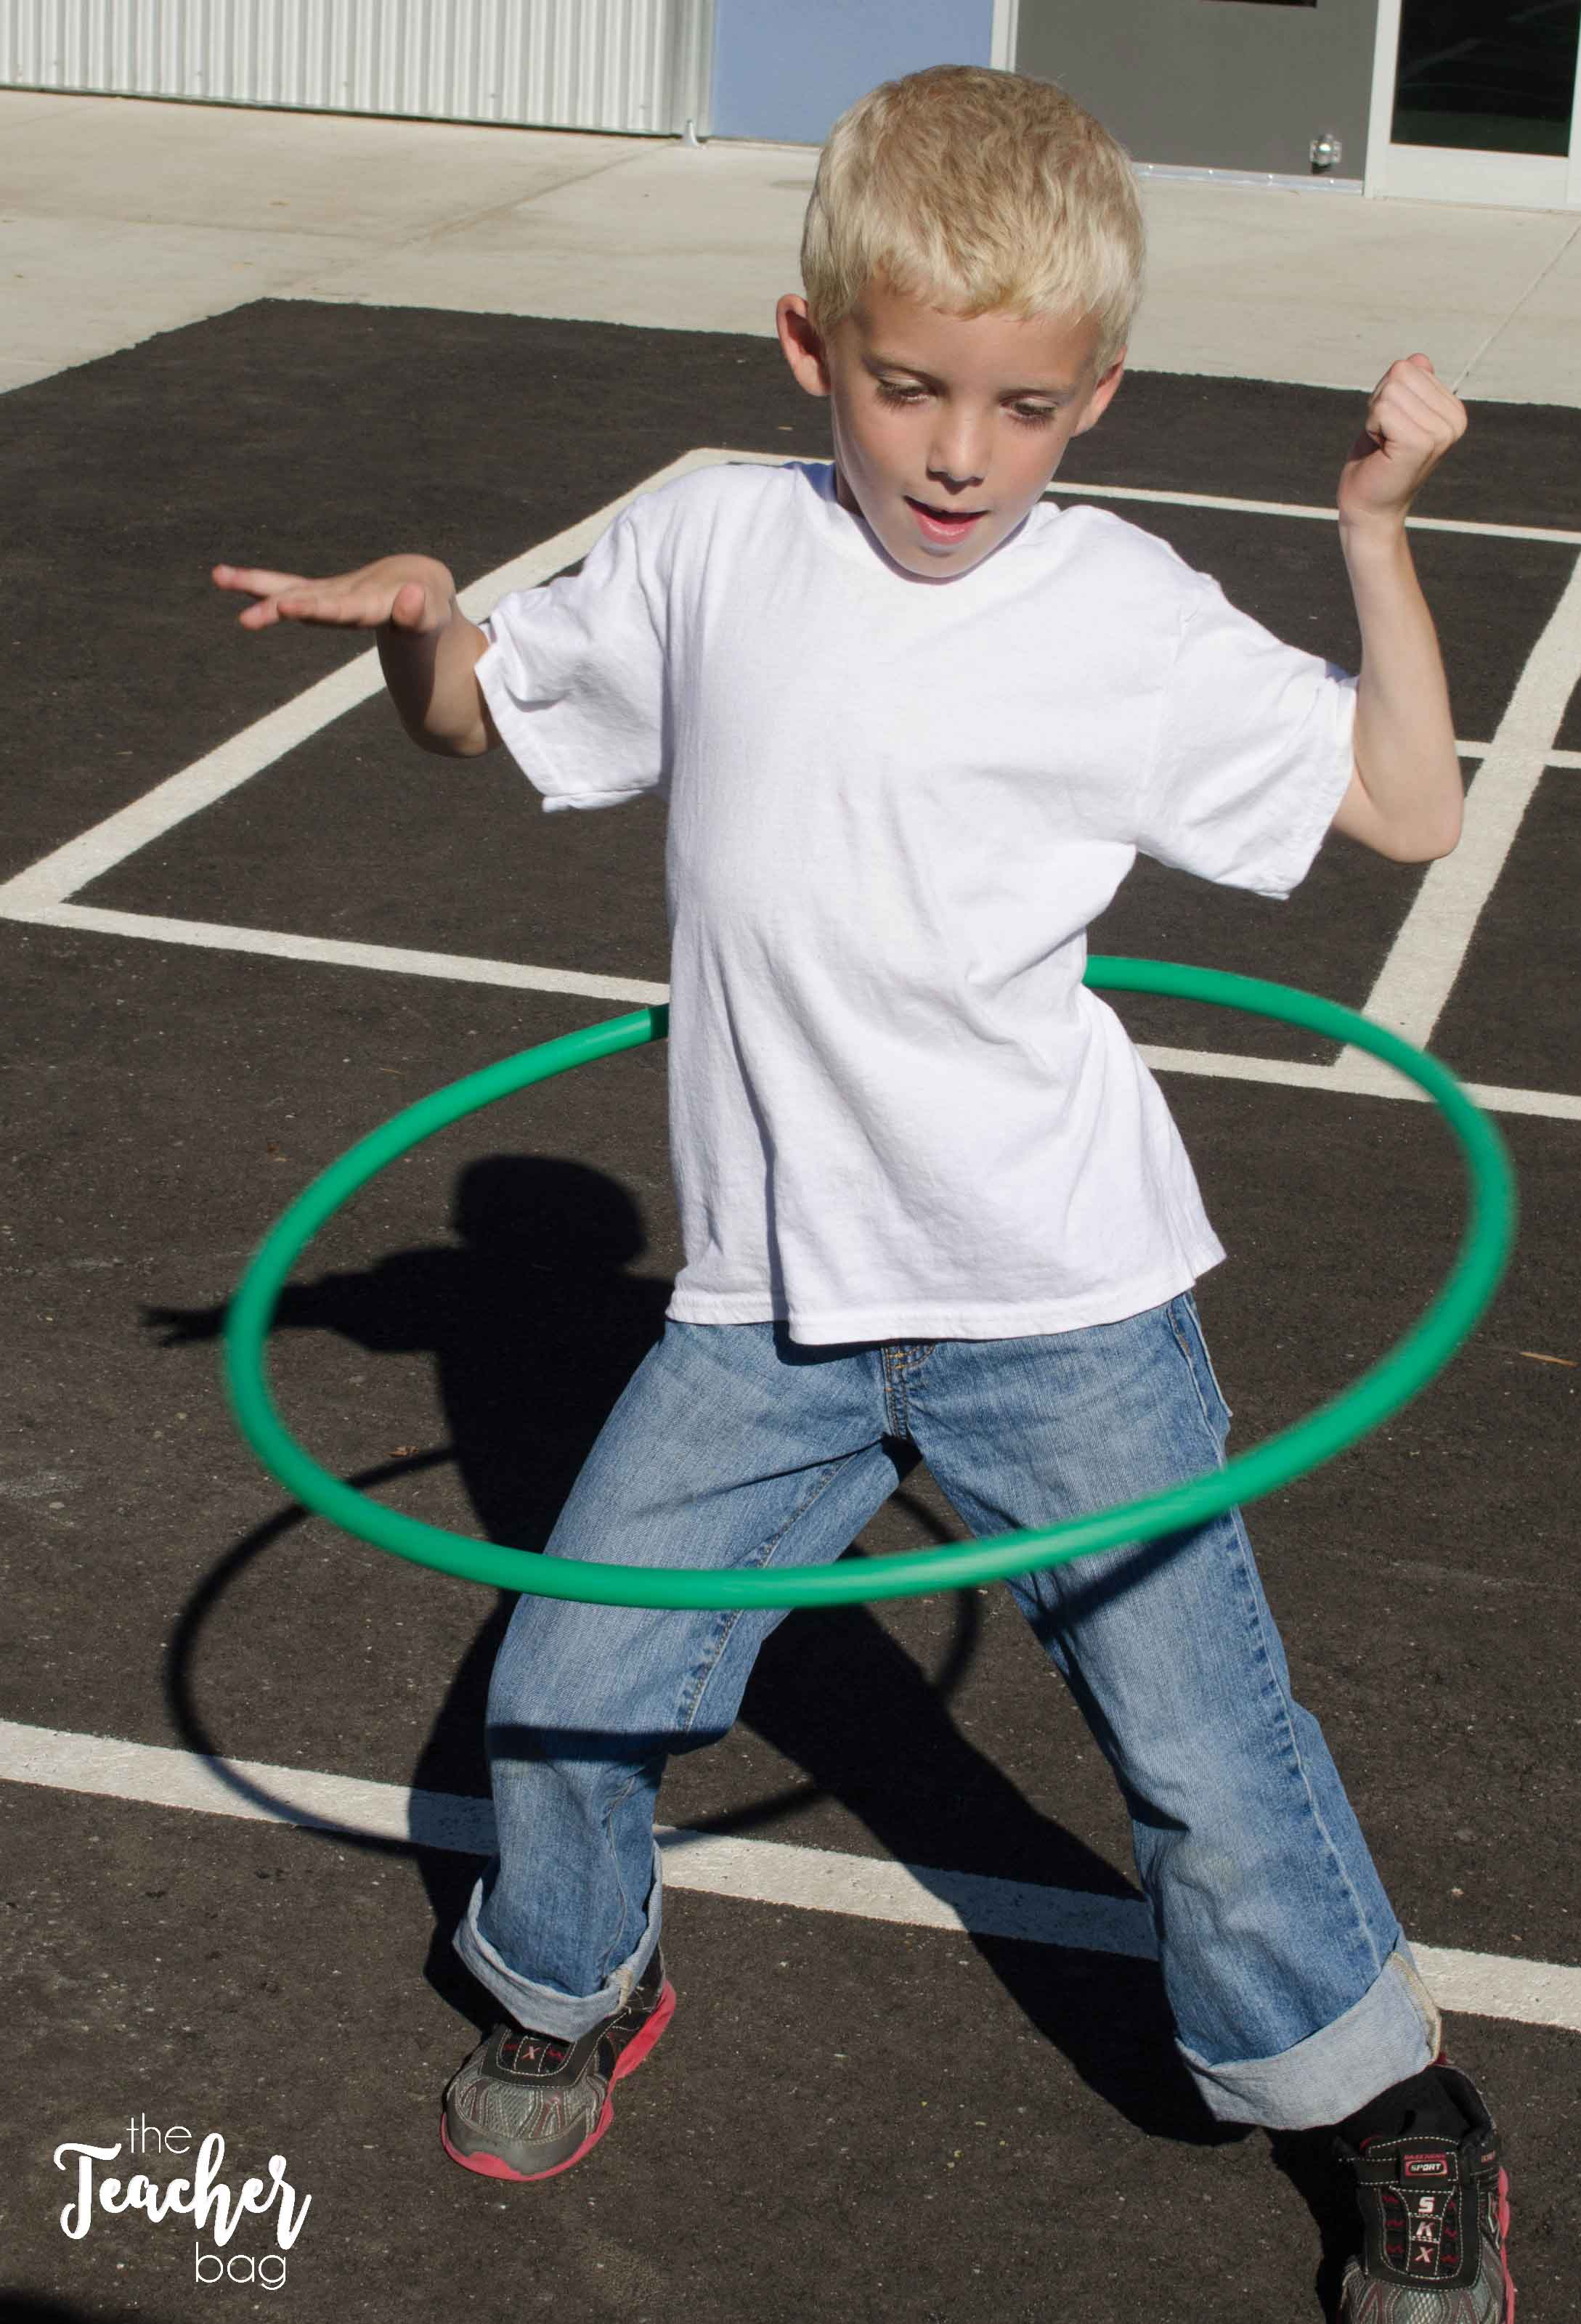 TB-brad-hula-hoop-50th-day